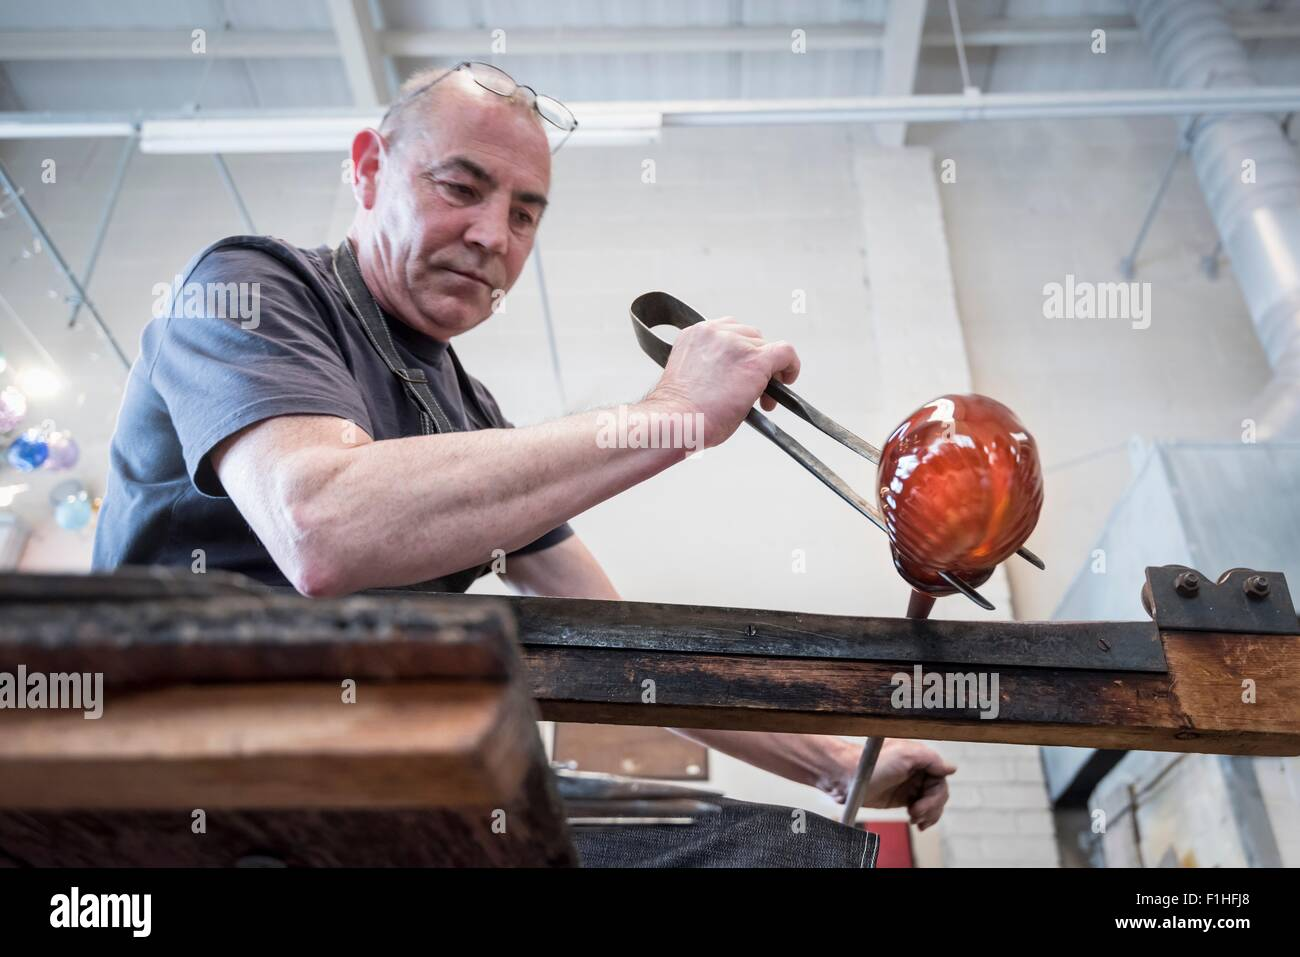 Glassblower forming molten glass - Stock Image